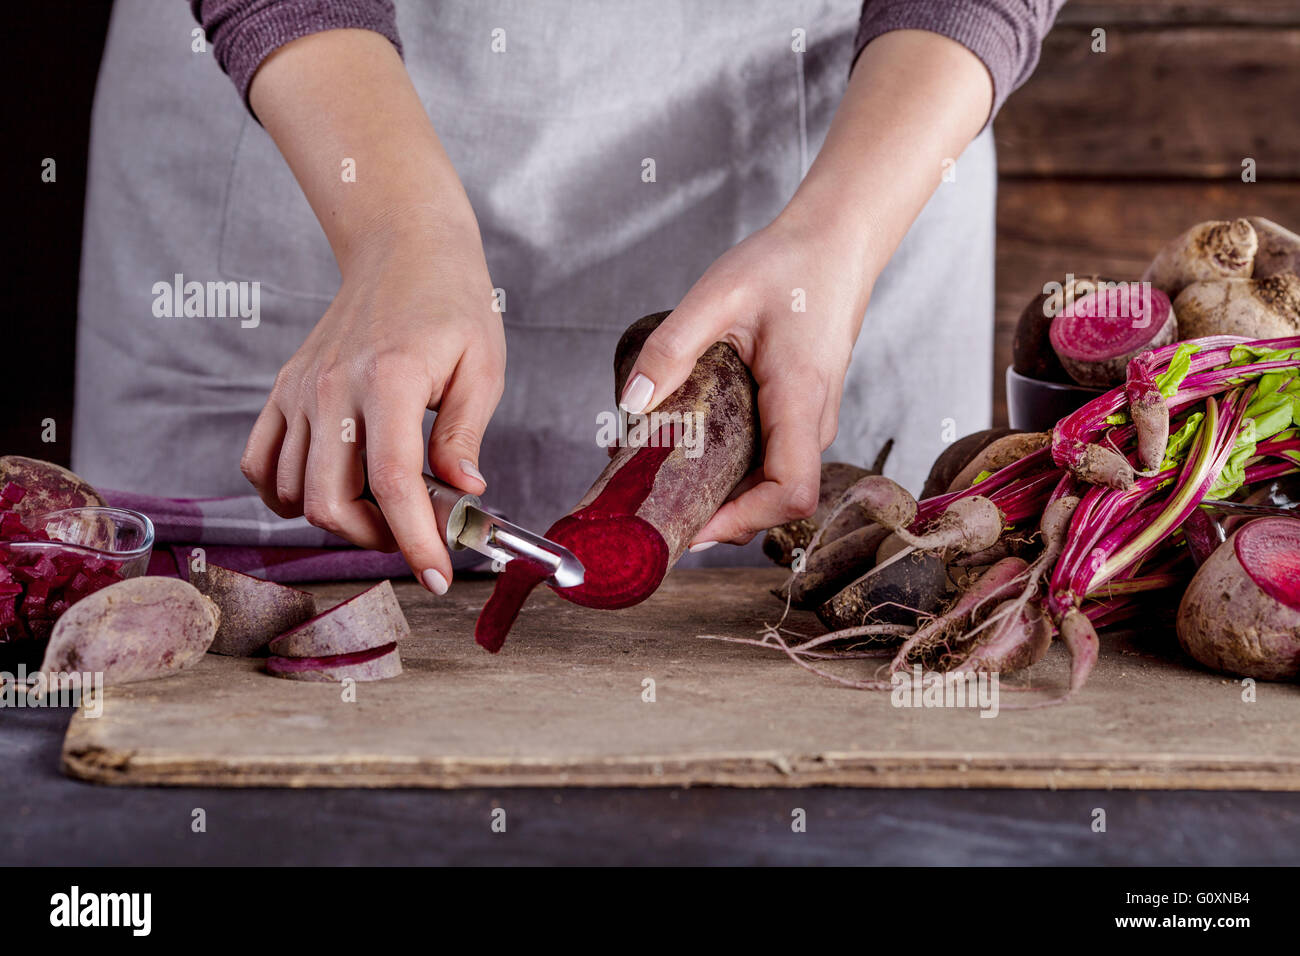 cook in gray apron is peeling a beetroot with vegetable peeler - Stock Image